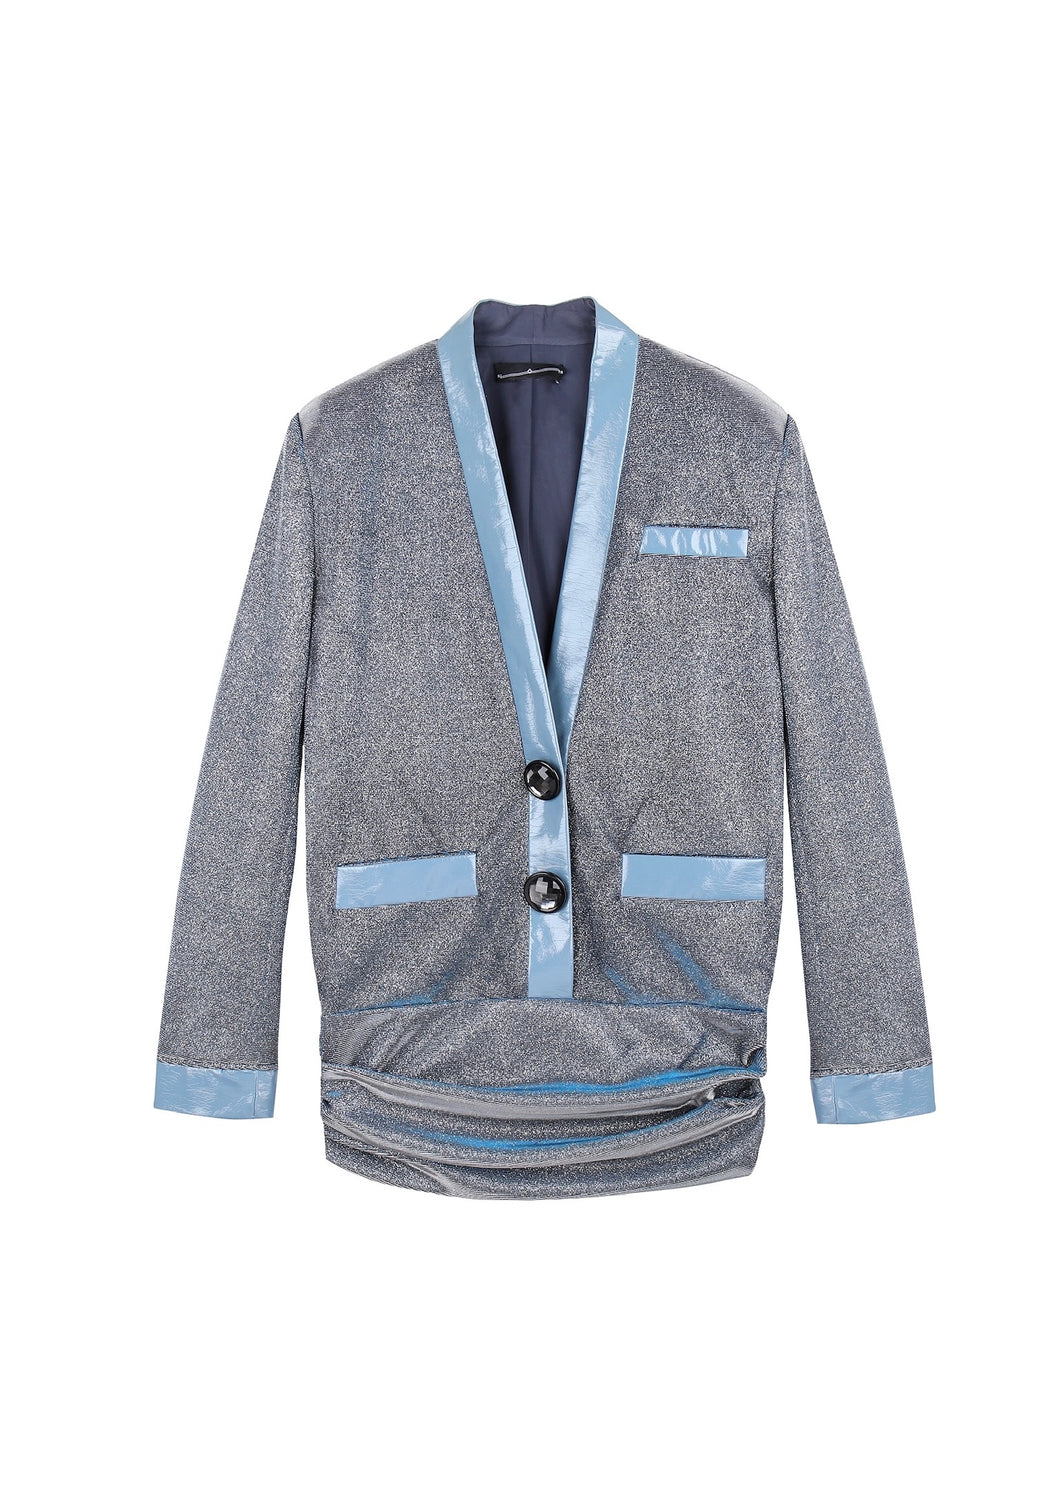 Sleep Over Sleep Suit Jacket Blazer Dress Blue